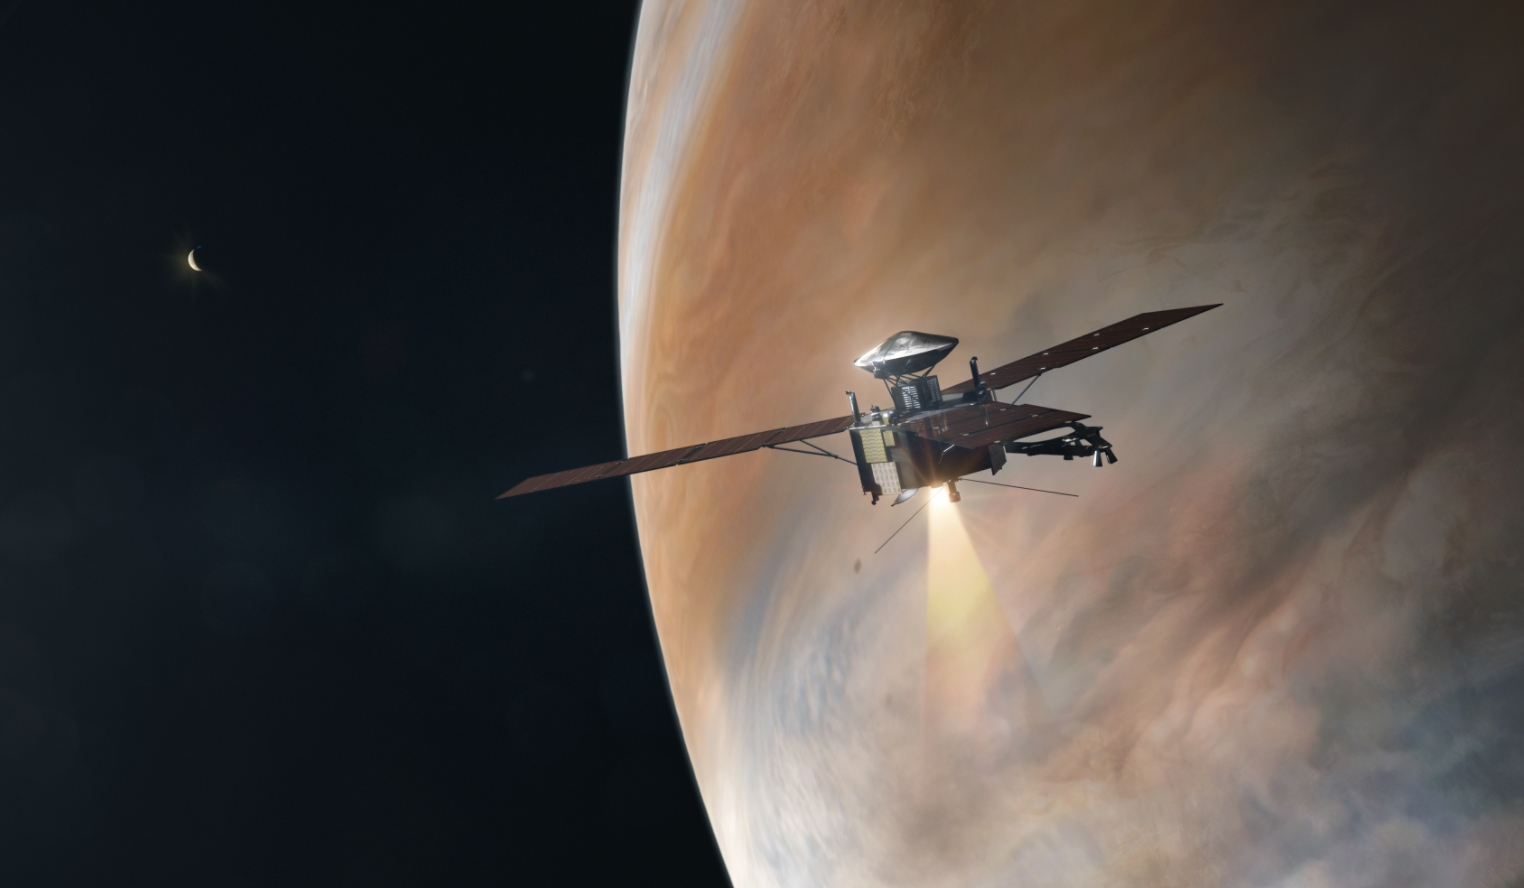 Juno illuminates 25 year old Jovian mystery, mission extended to 2025